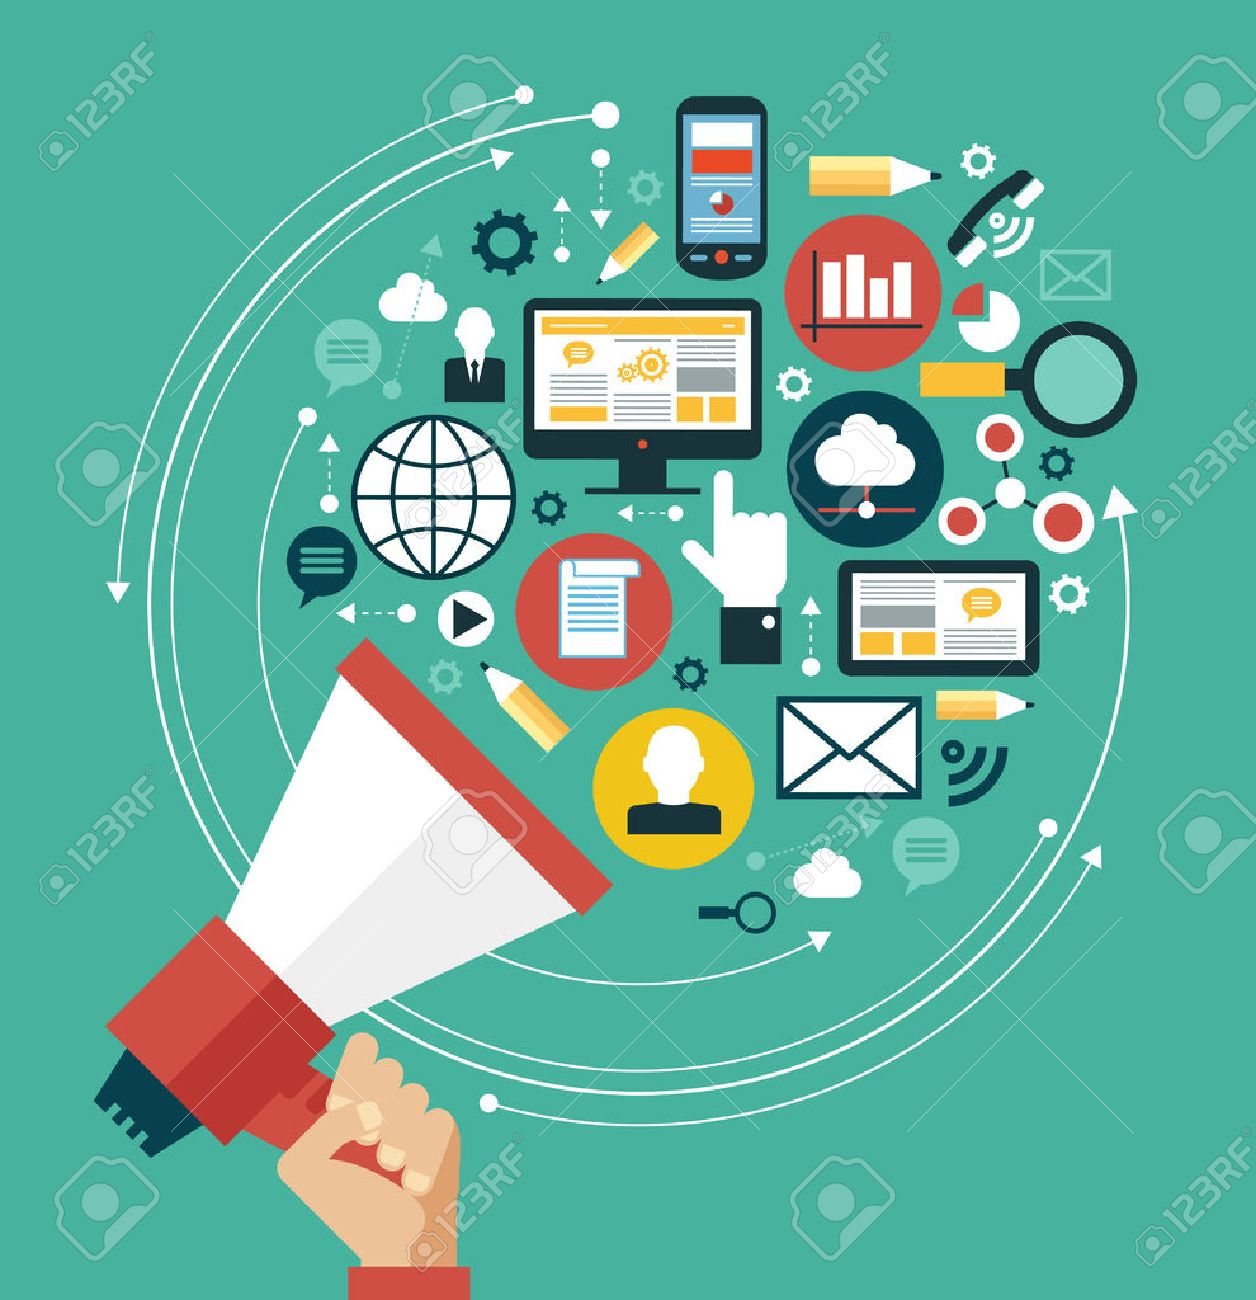 Digital marketing concept. Human hand with a megaphone surrounded by media icons Standard-Bild - 46515311